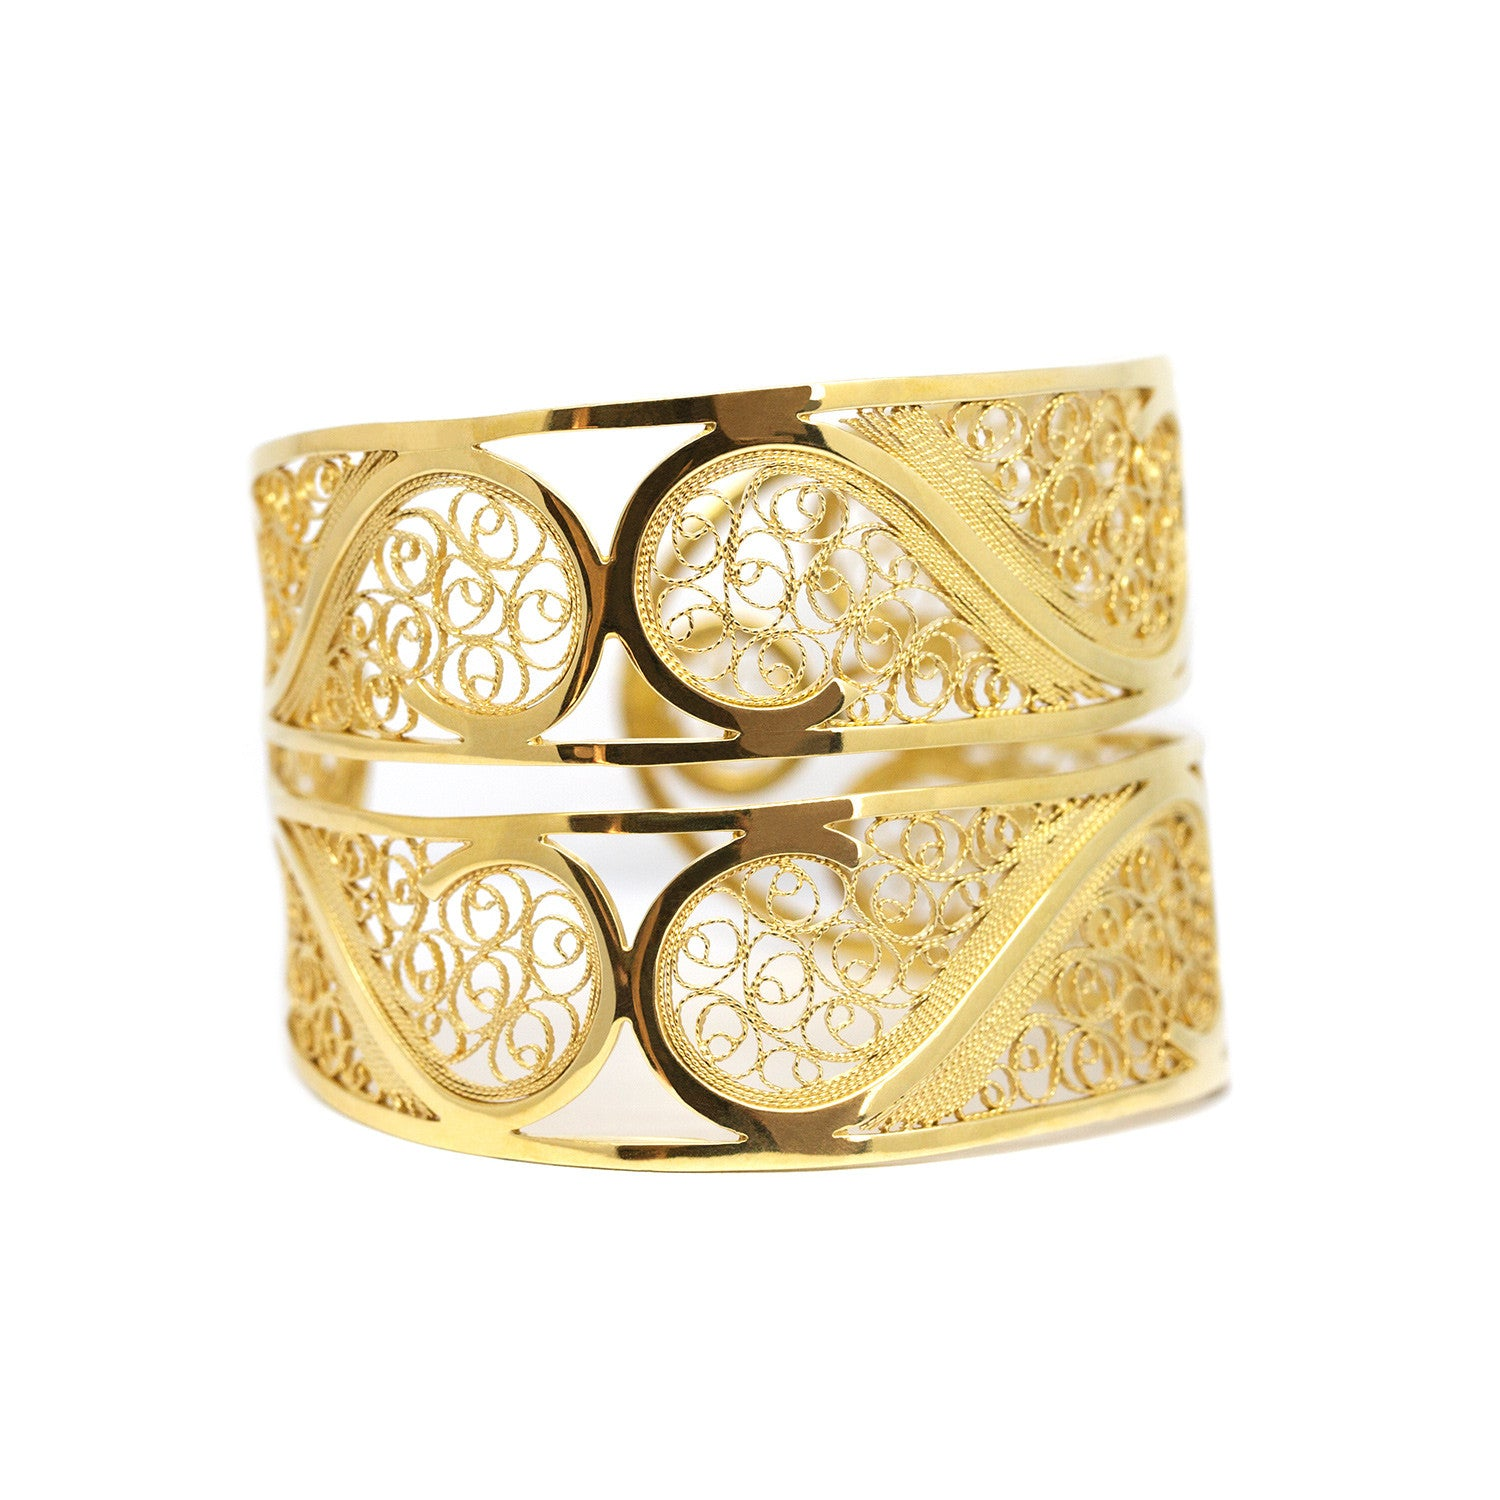 Filigree Links Bangle. Yellow gold